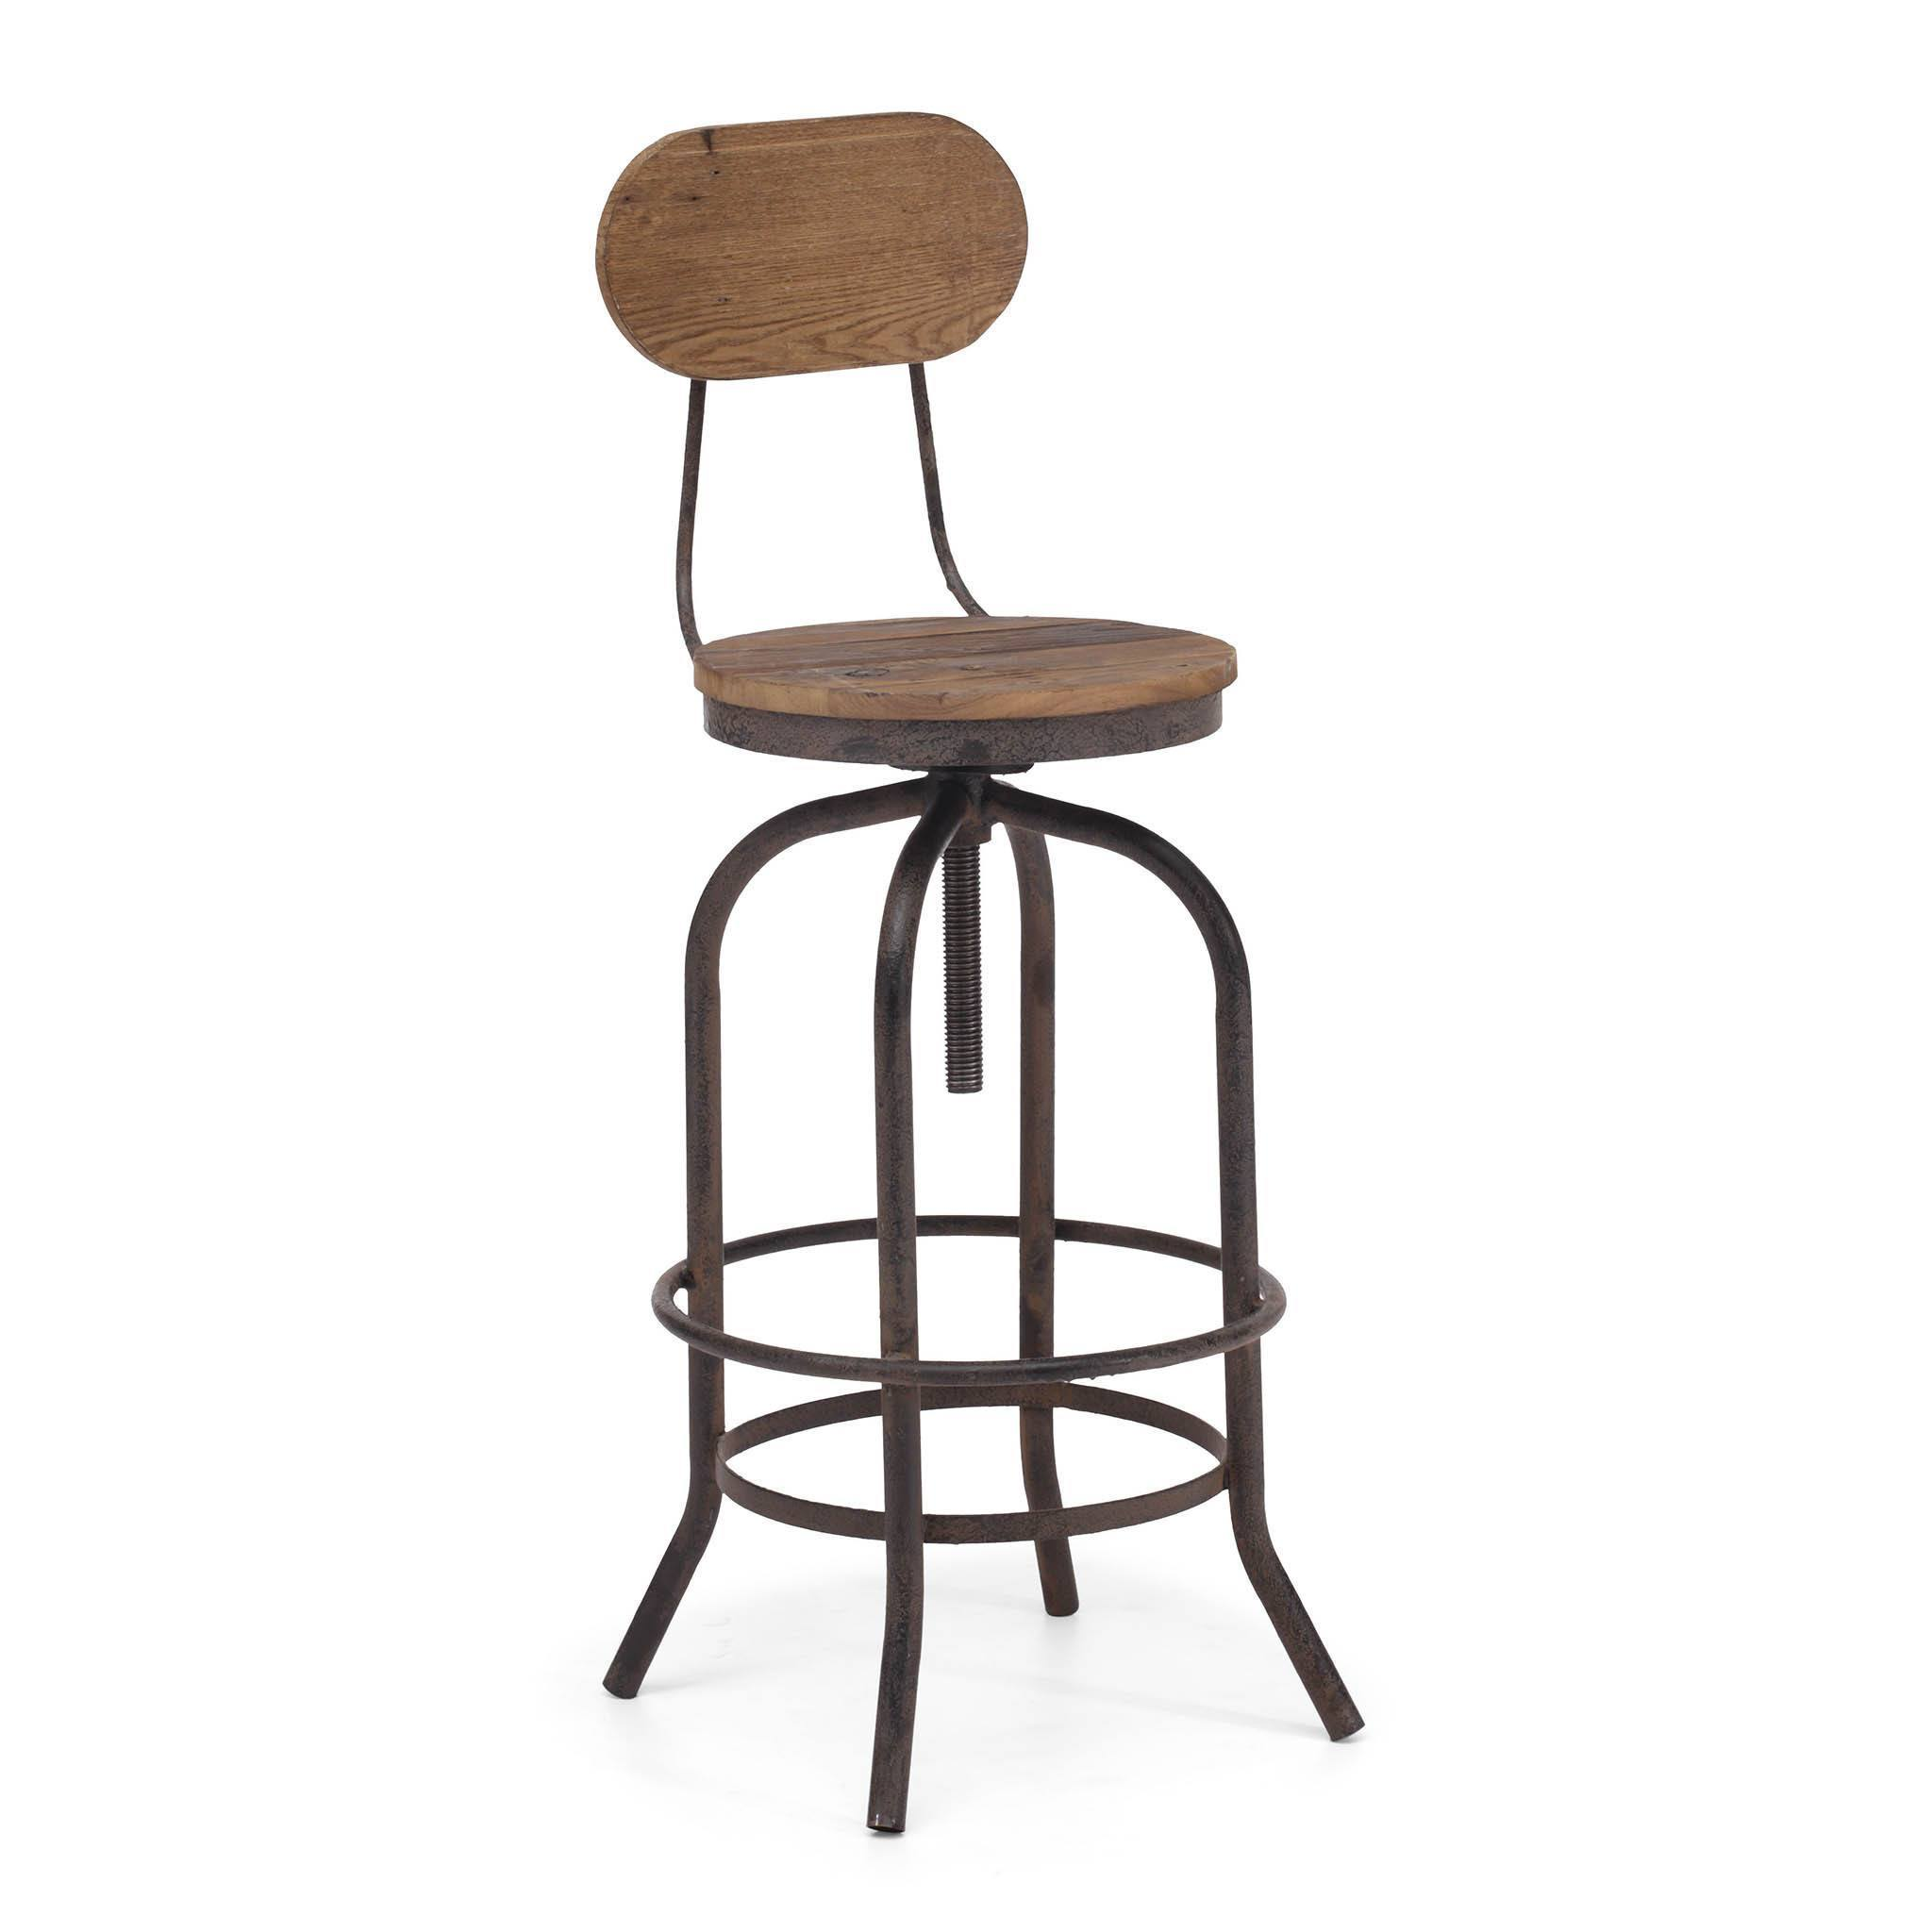 Zuo twin peaks adjustable bar chair bar stool boutique for Stool chair